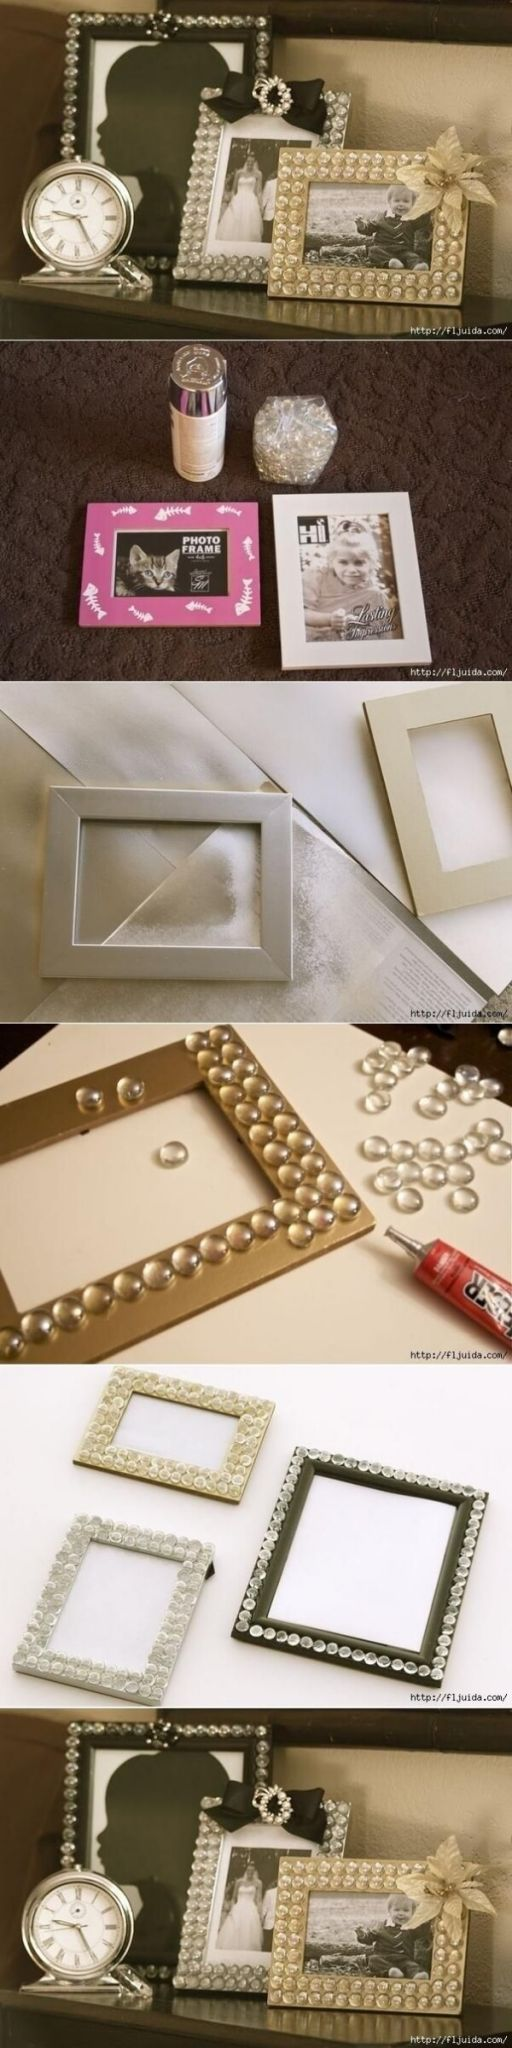 best picture frame ideas images on pinterest home ideas